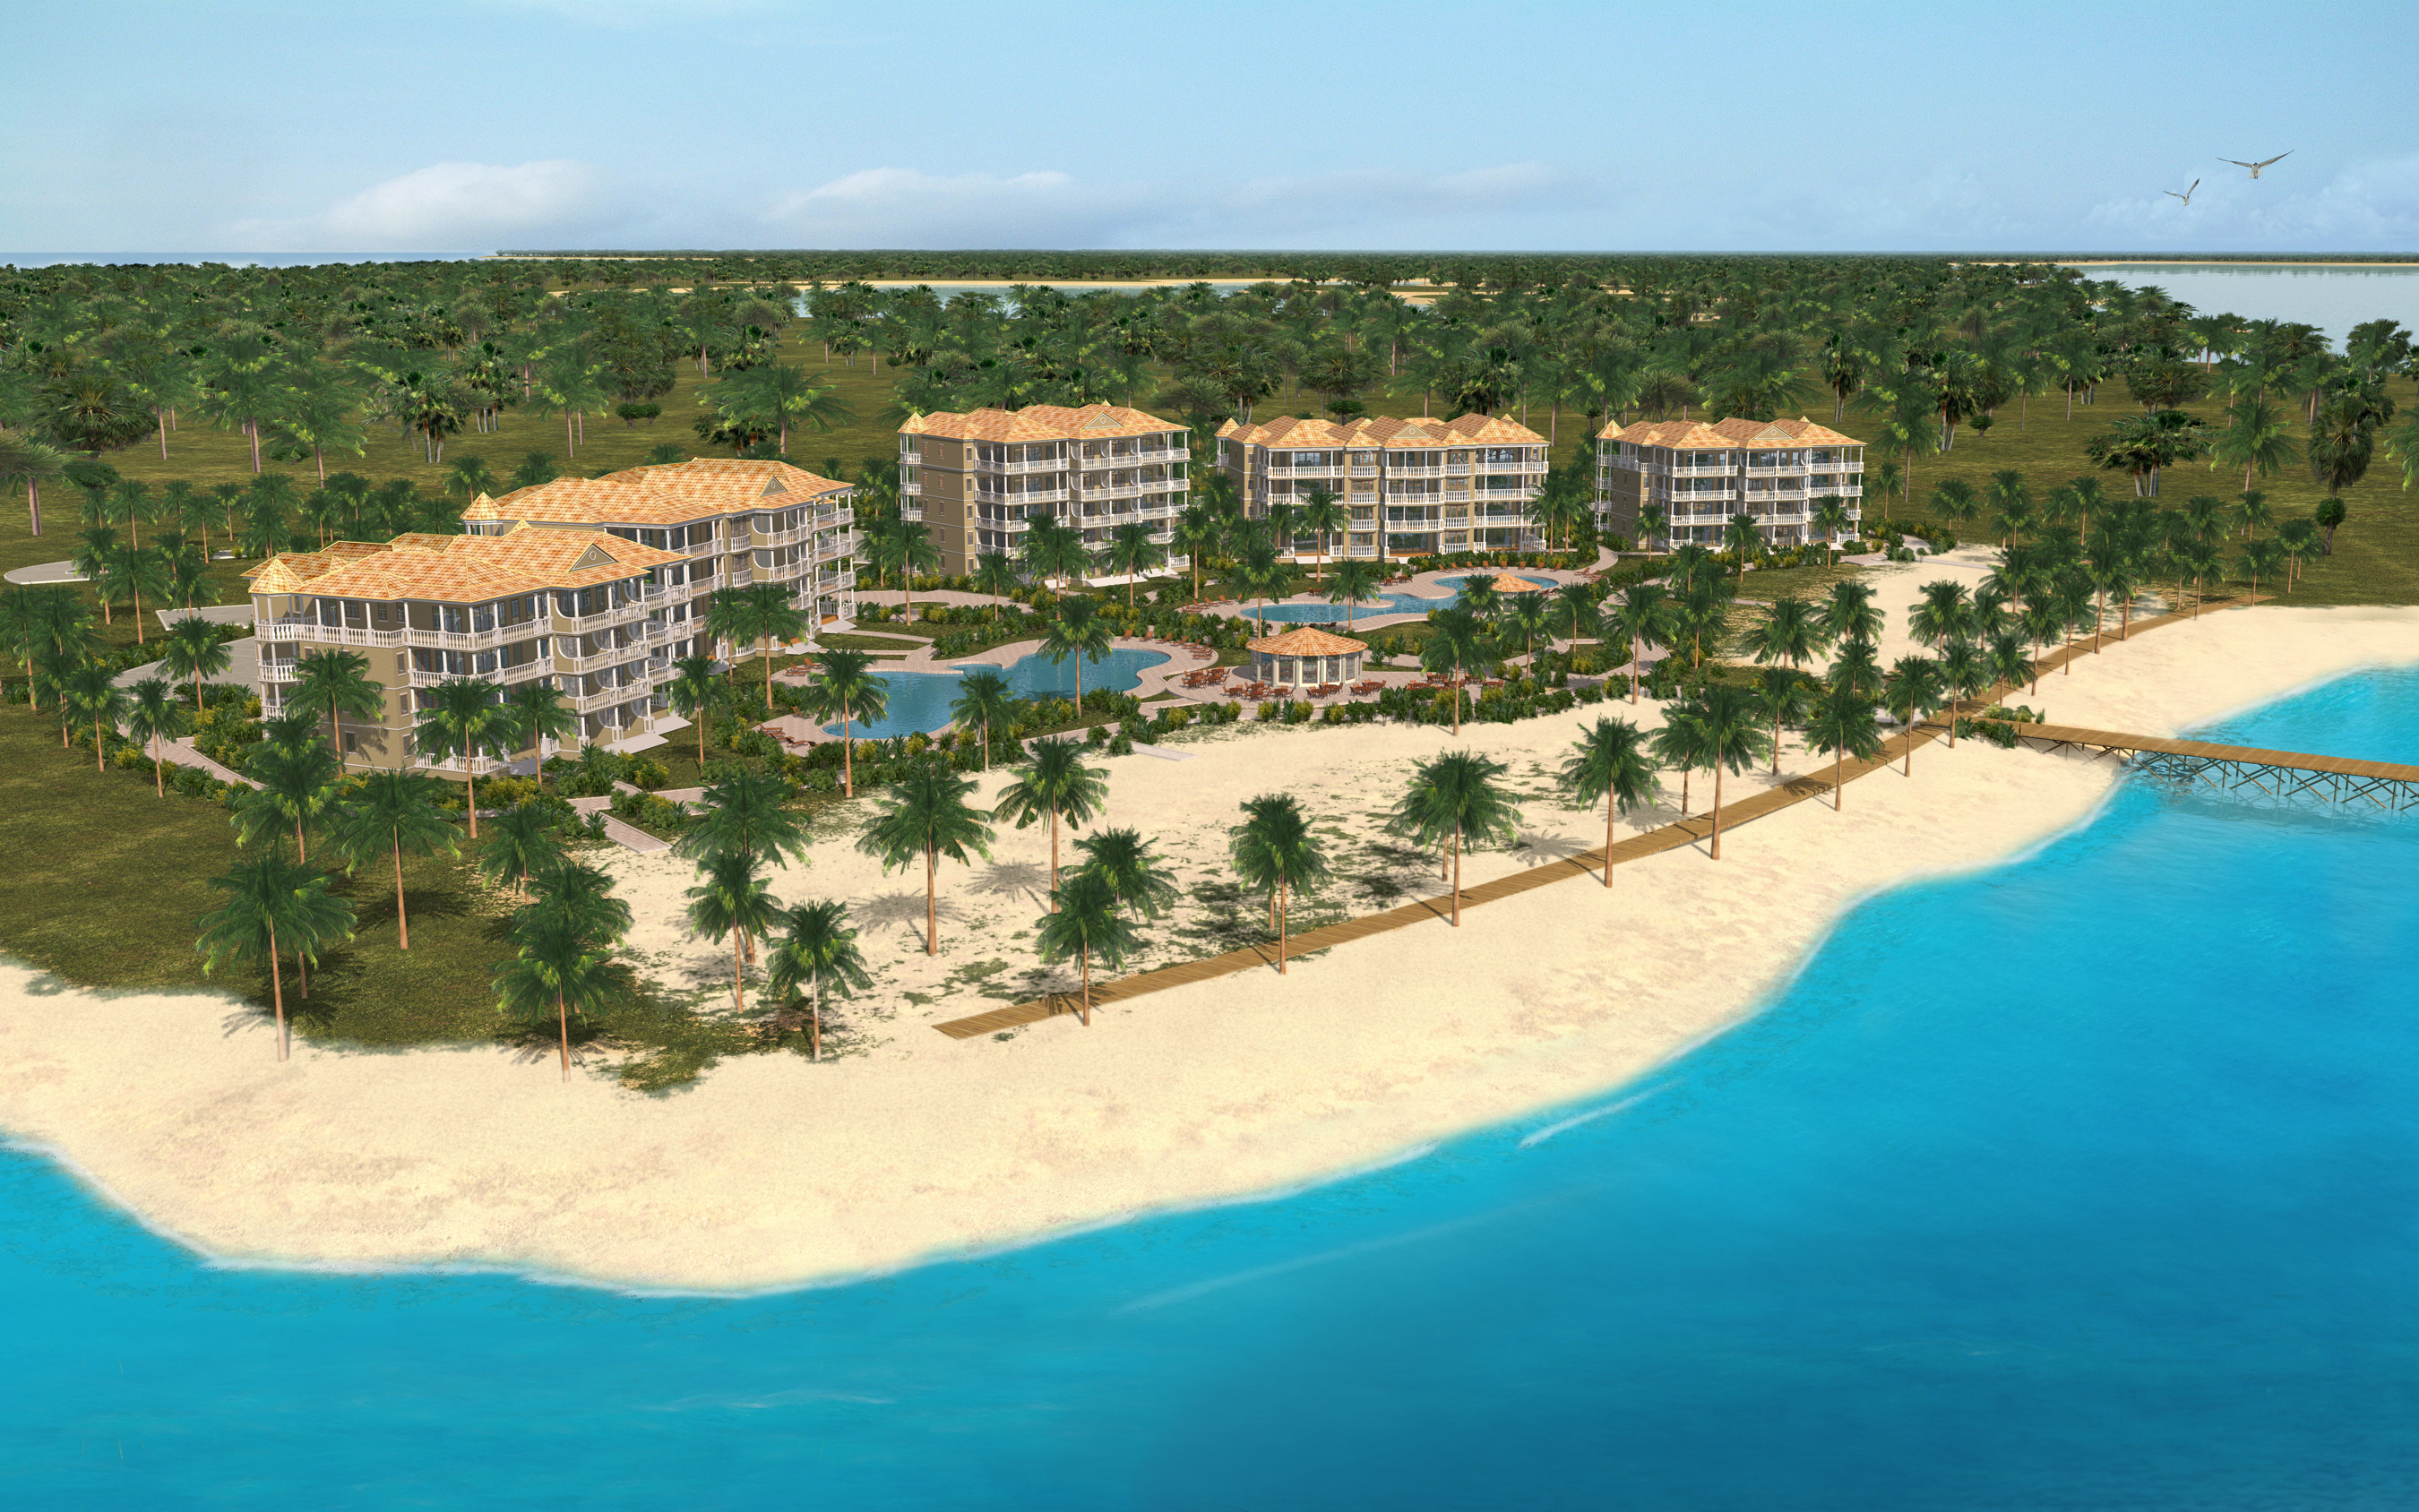 Wyndham grand bay waterford of grand cayman cayman for Waterford grand